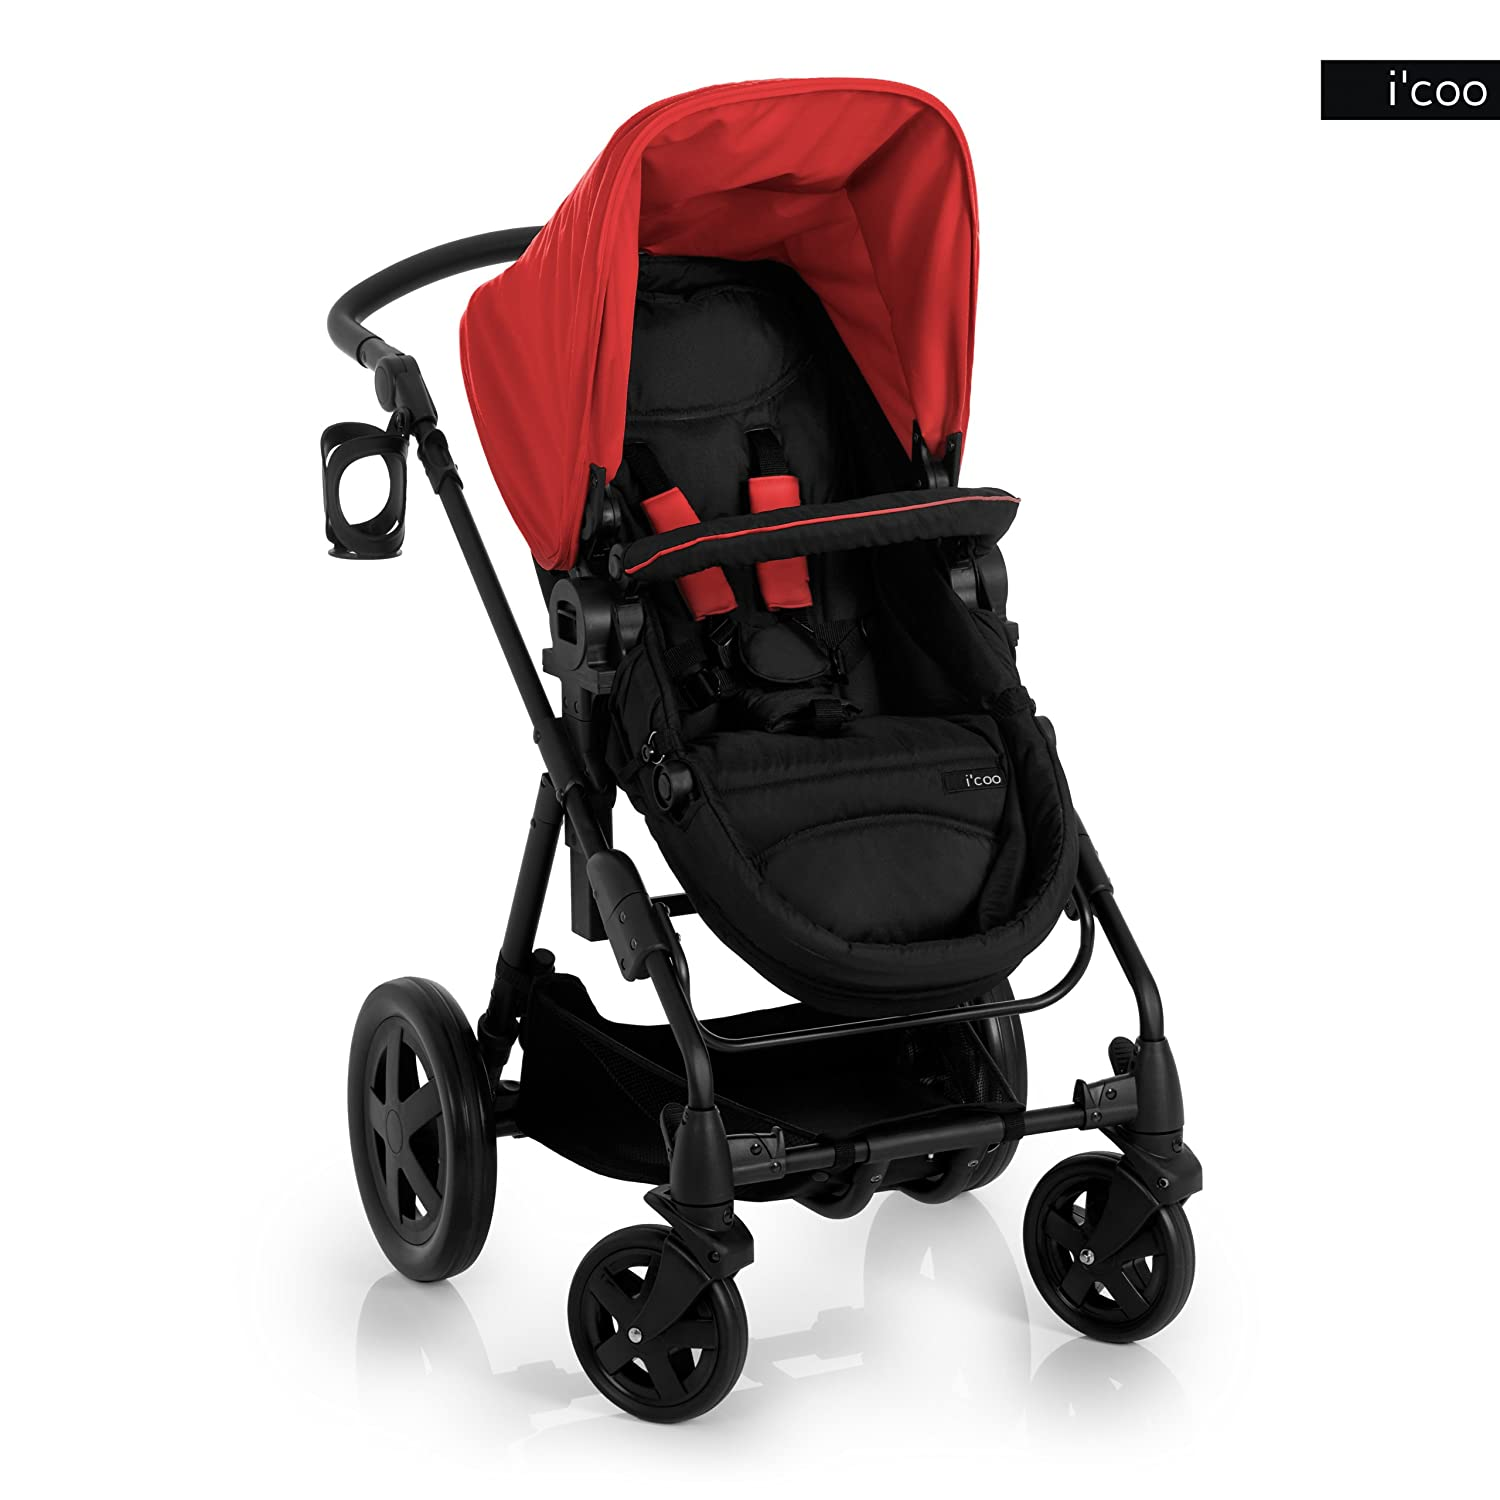 i coo Photon Stroller, Red Black, 0-48 Months